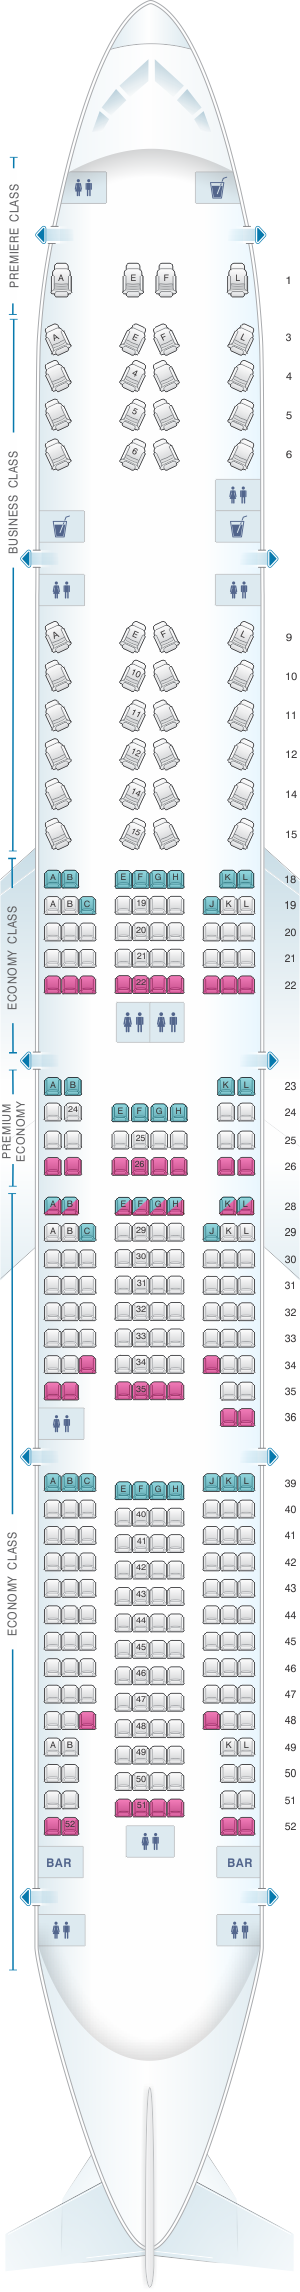 Seat map for Air France Boeing B777 300 International Long-Haul 322pax